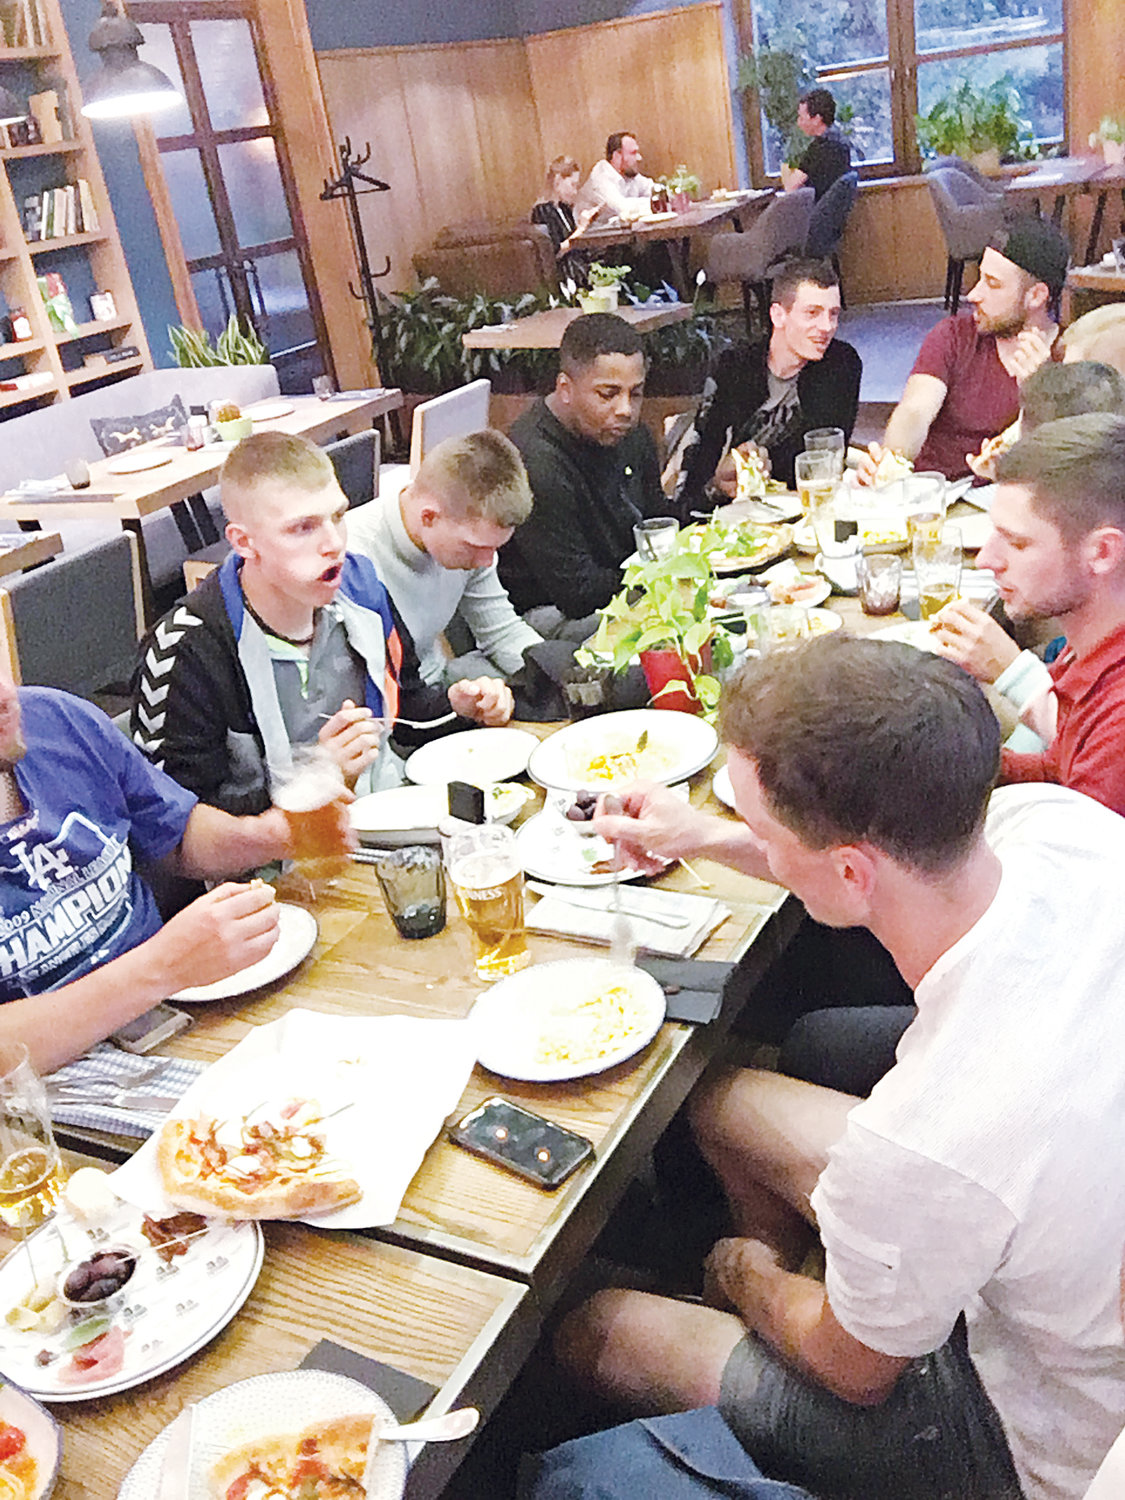 Breaking bread together. The Kaunas County baseball team from Lithuania enjoyed a lot of Russian cuisine as well as foods from other countries. Pittsboro native Woods Fines (head of the table) called his experience in Moscow incredible.